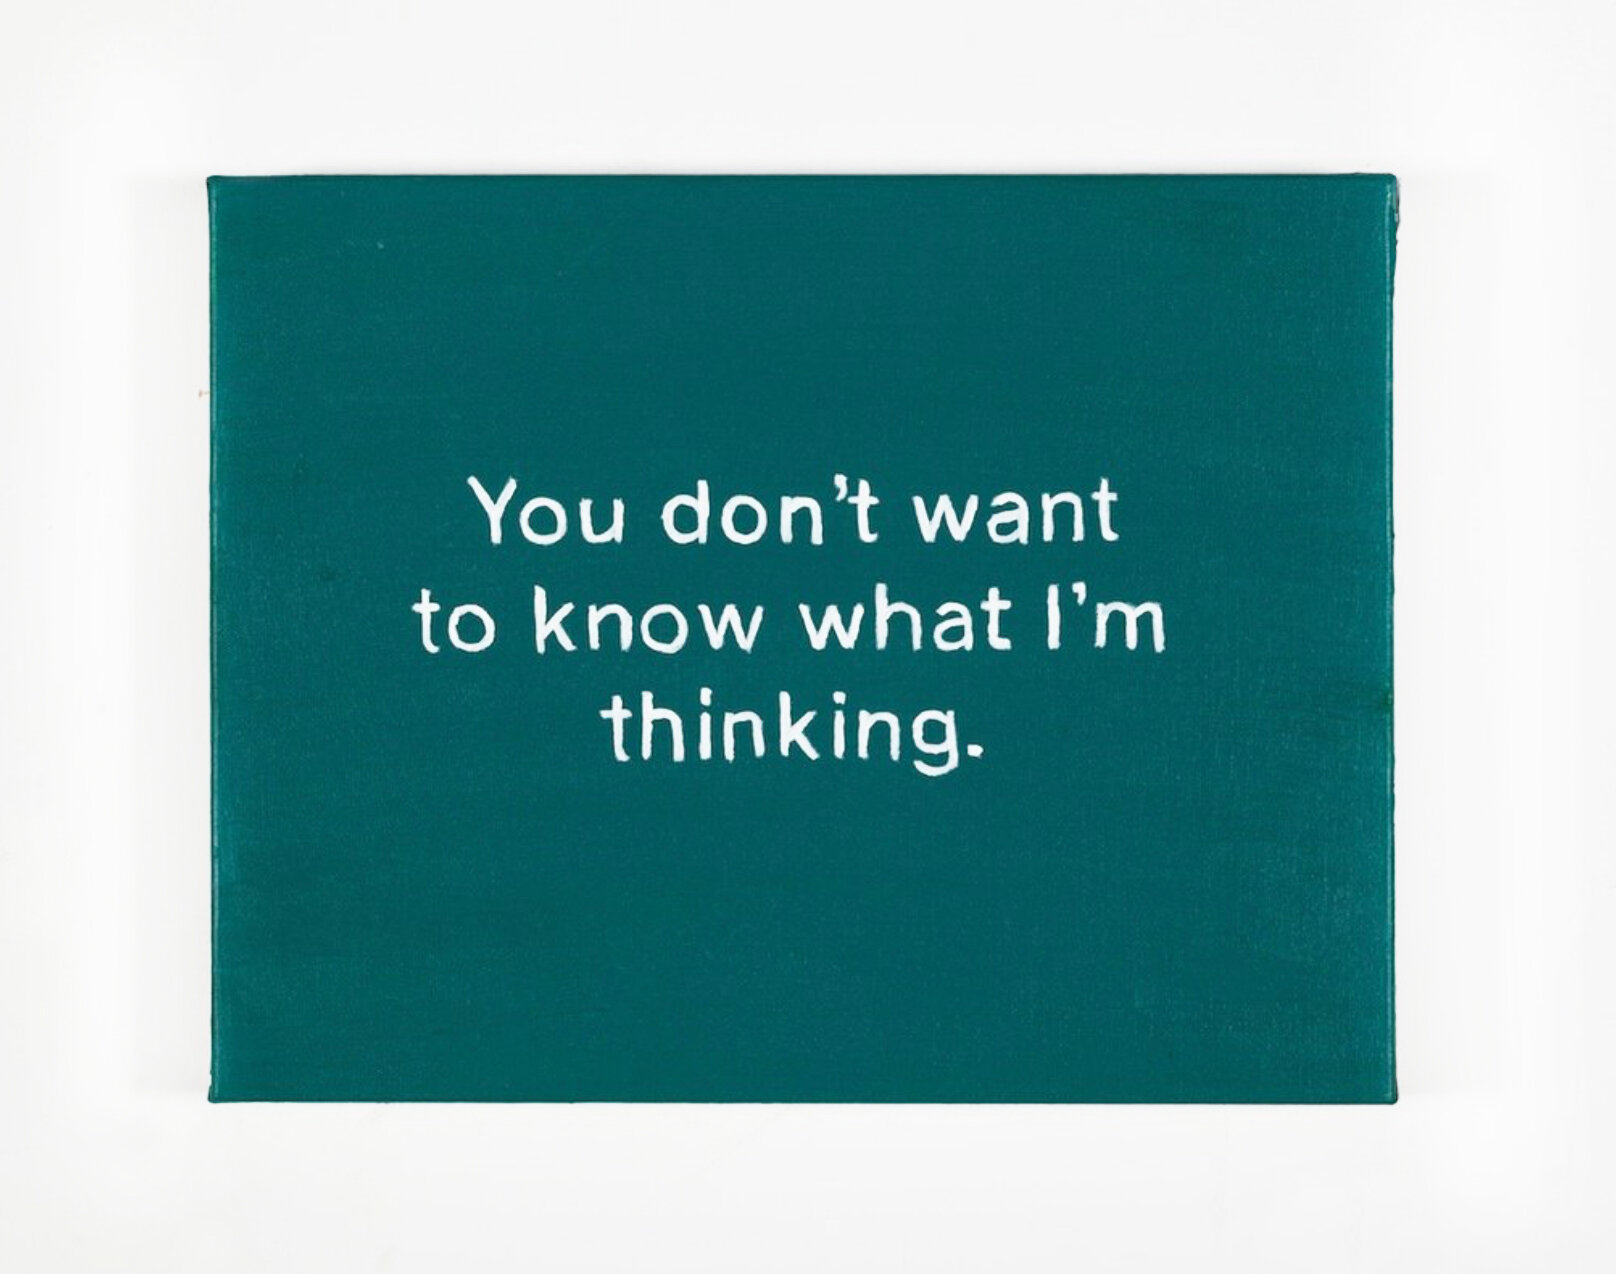 - The Thoughts In My Head #41(You don't want to knowwhat I'm thinking.)2012Acrylic on canvas11 x 14 inches